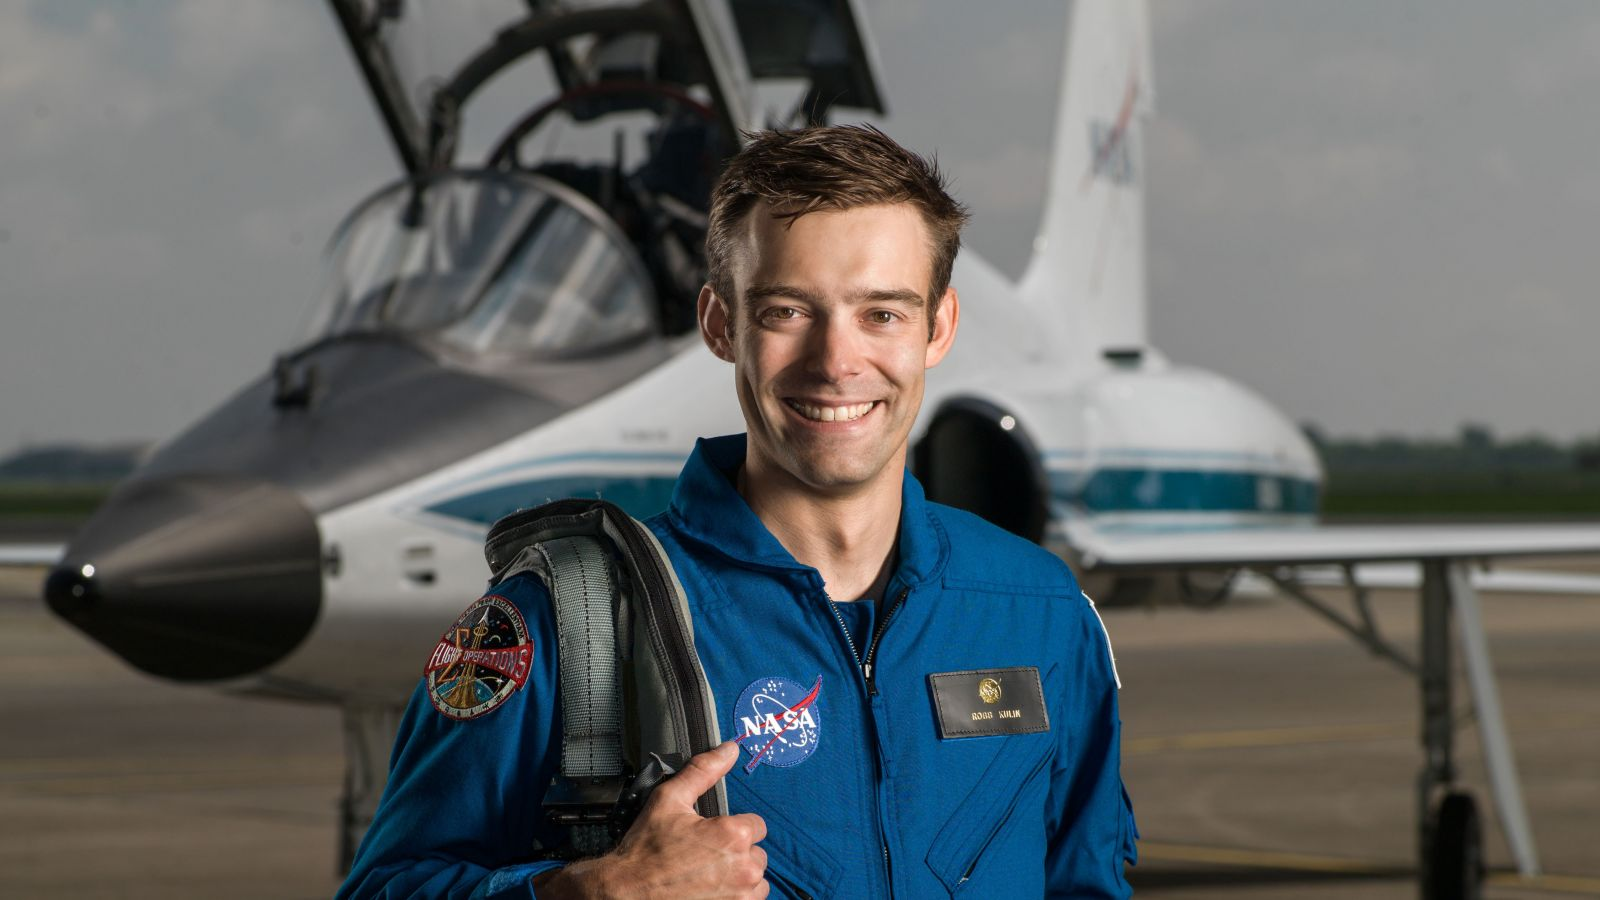 Astronaut quits NASA training